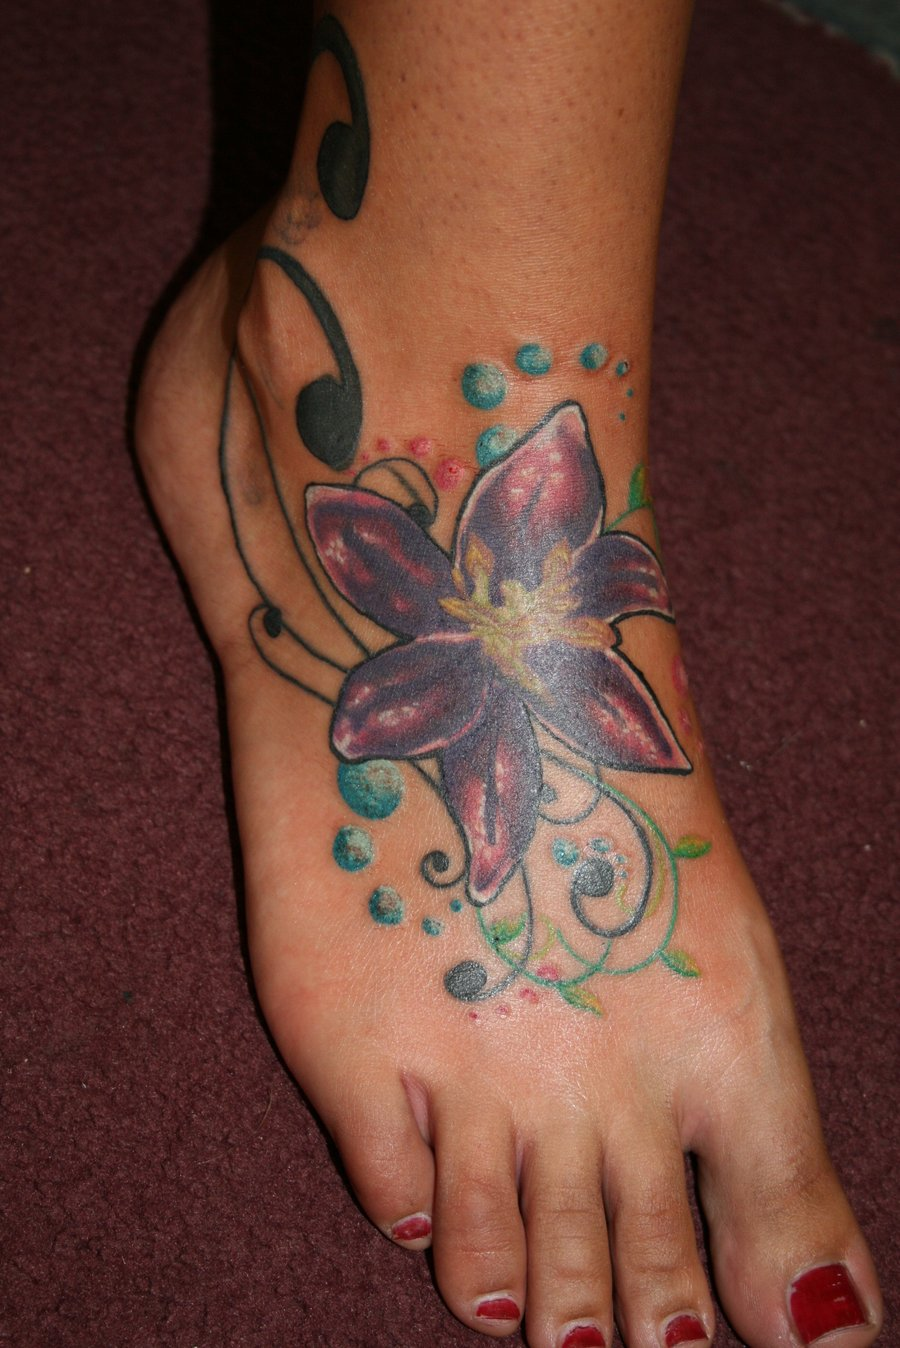 Top girl tattoo designs for Women tattoos ideas